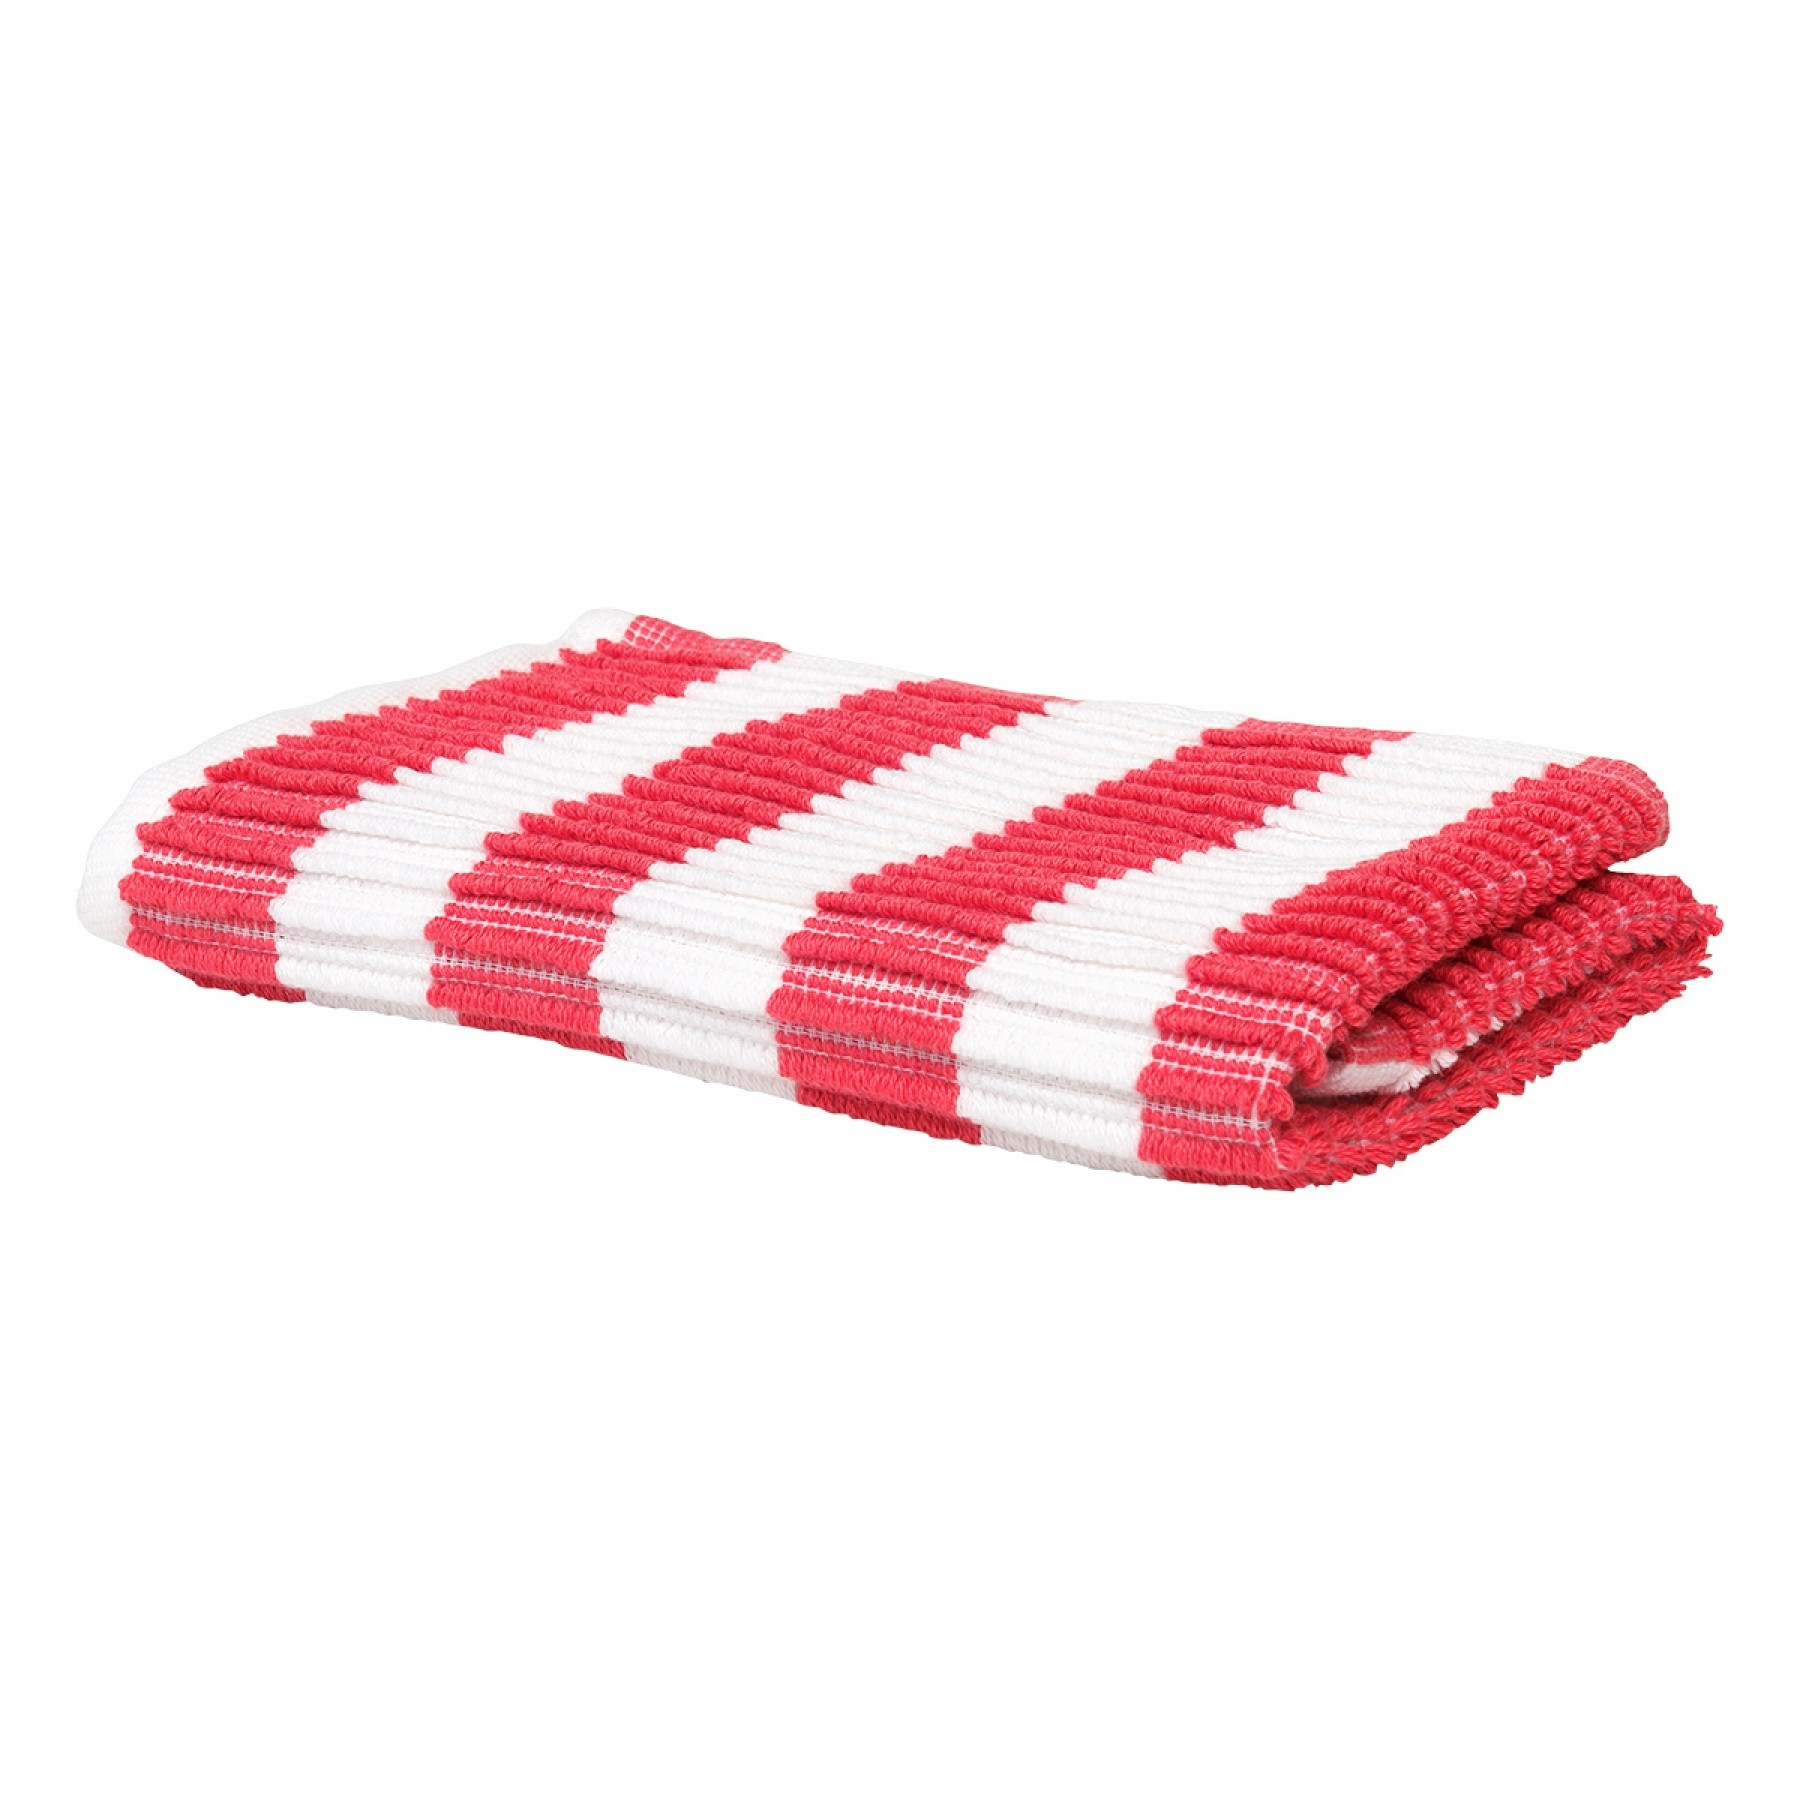 Linolux Vaatdoek Red/ White